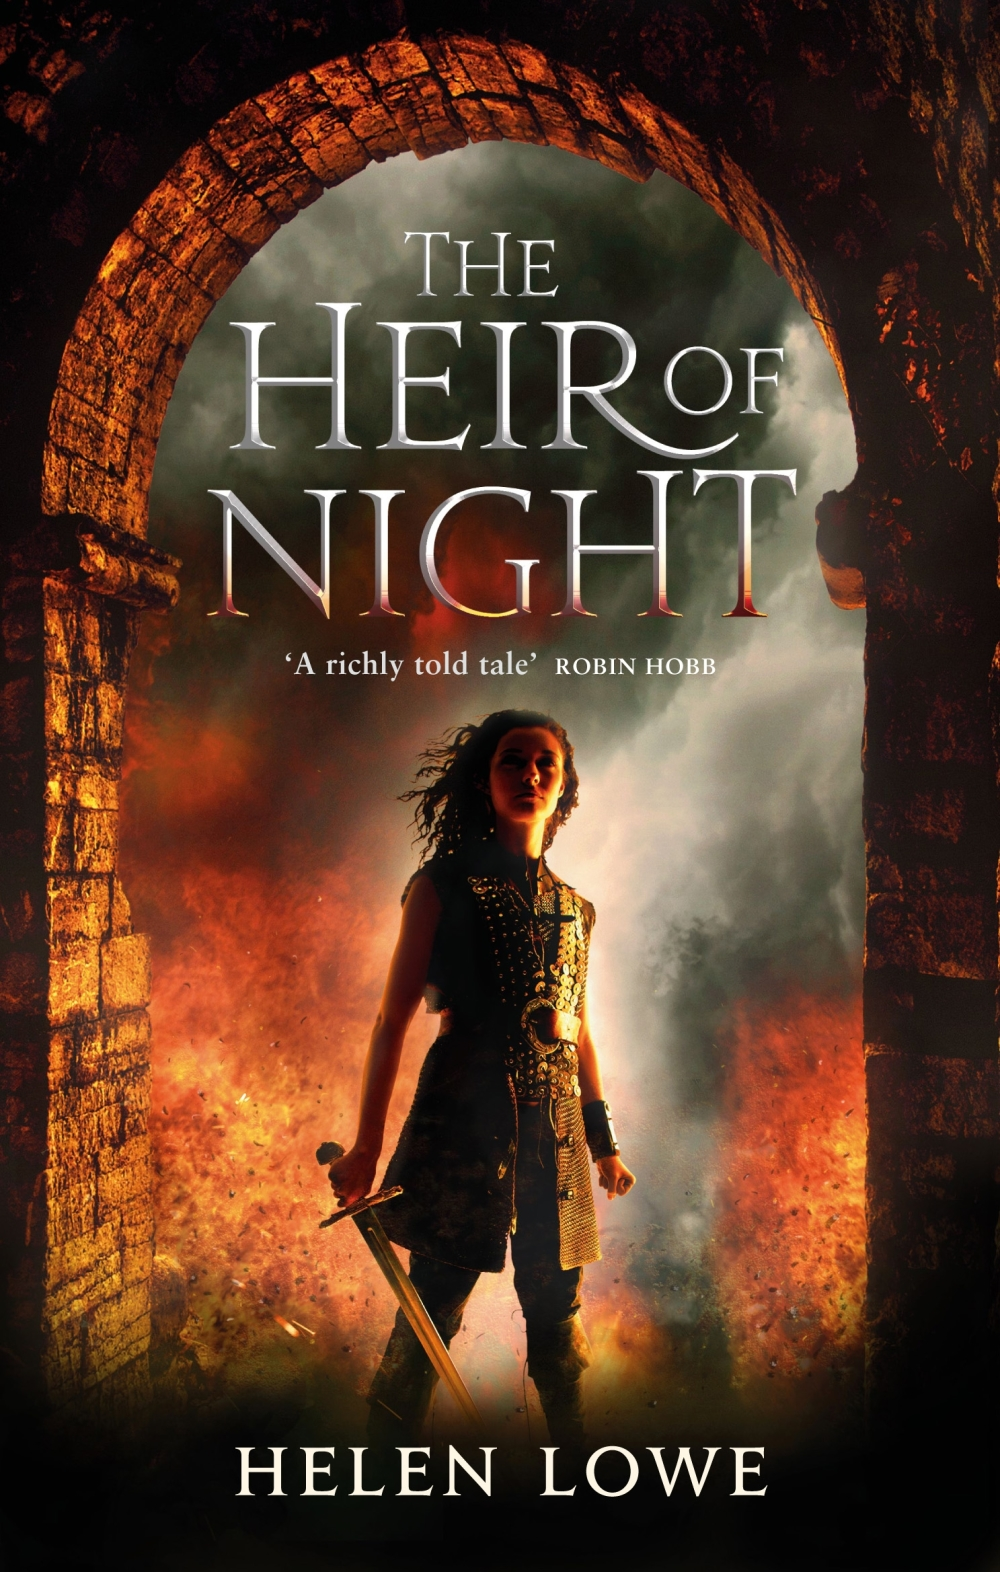 Book Cover Fantasy World ~ Heirofnight